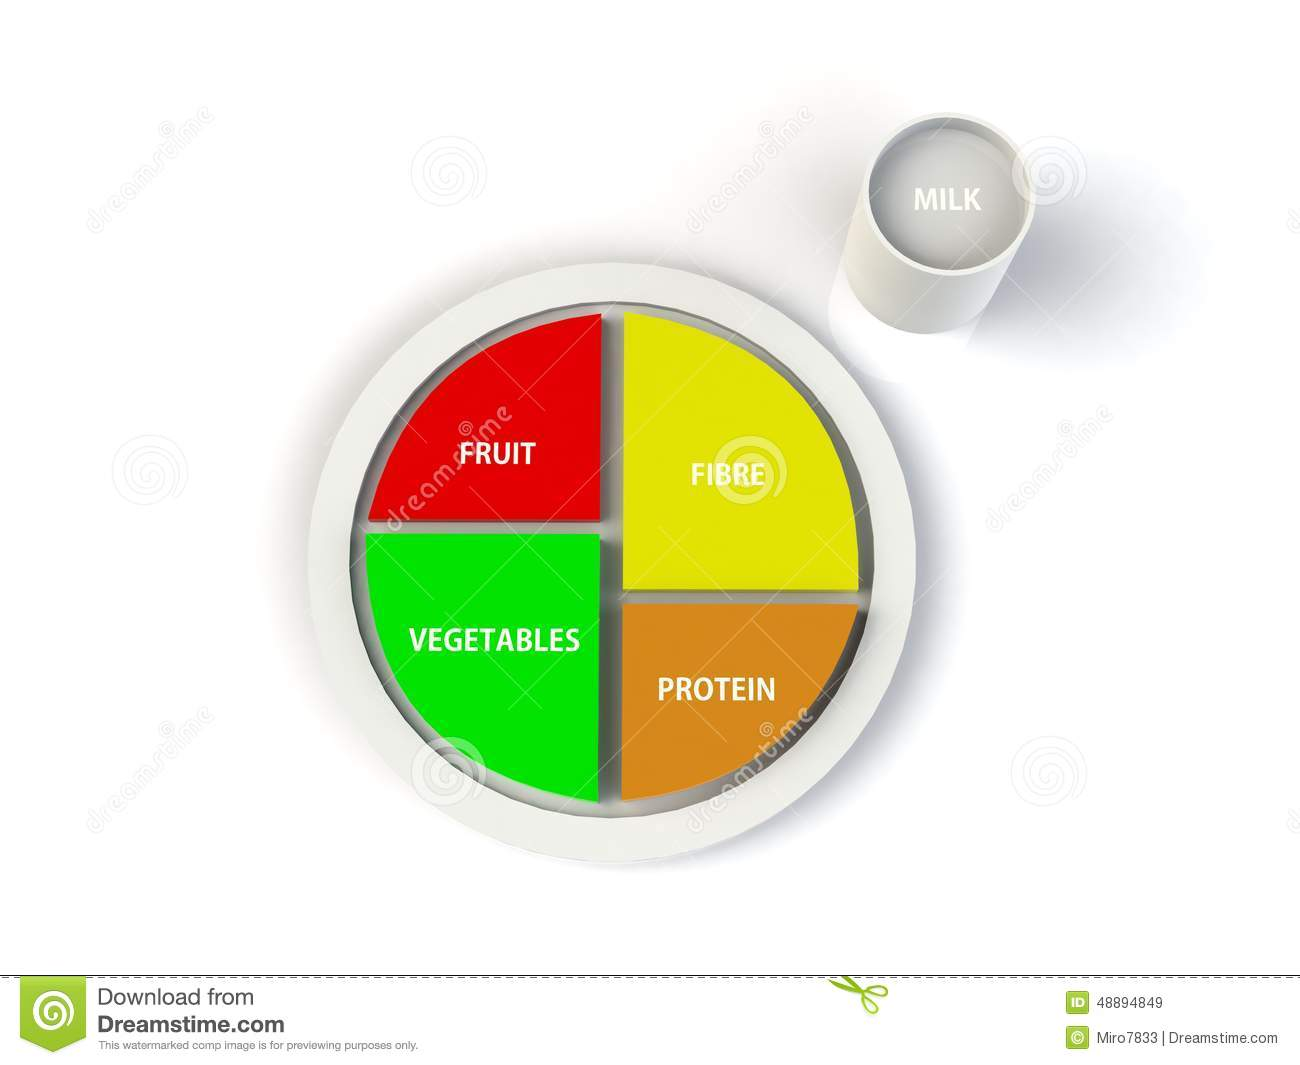 A balanced diet protein, fruits, vegetables, fiber on a plate